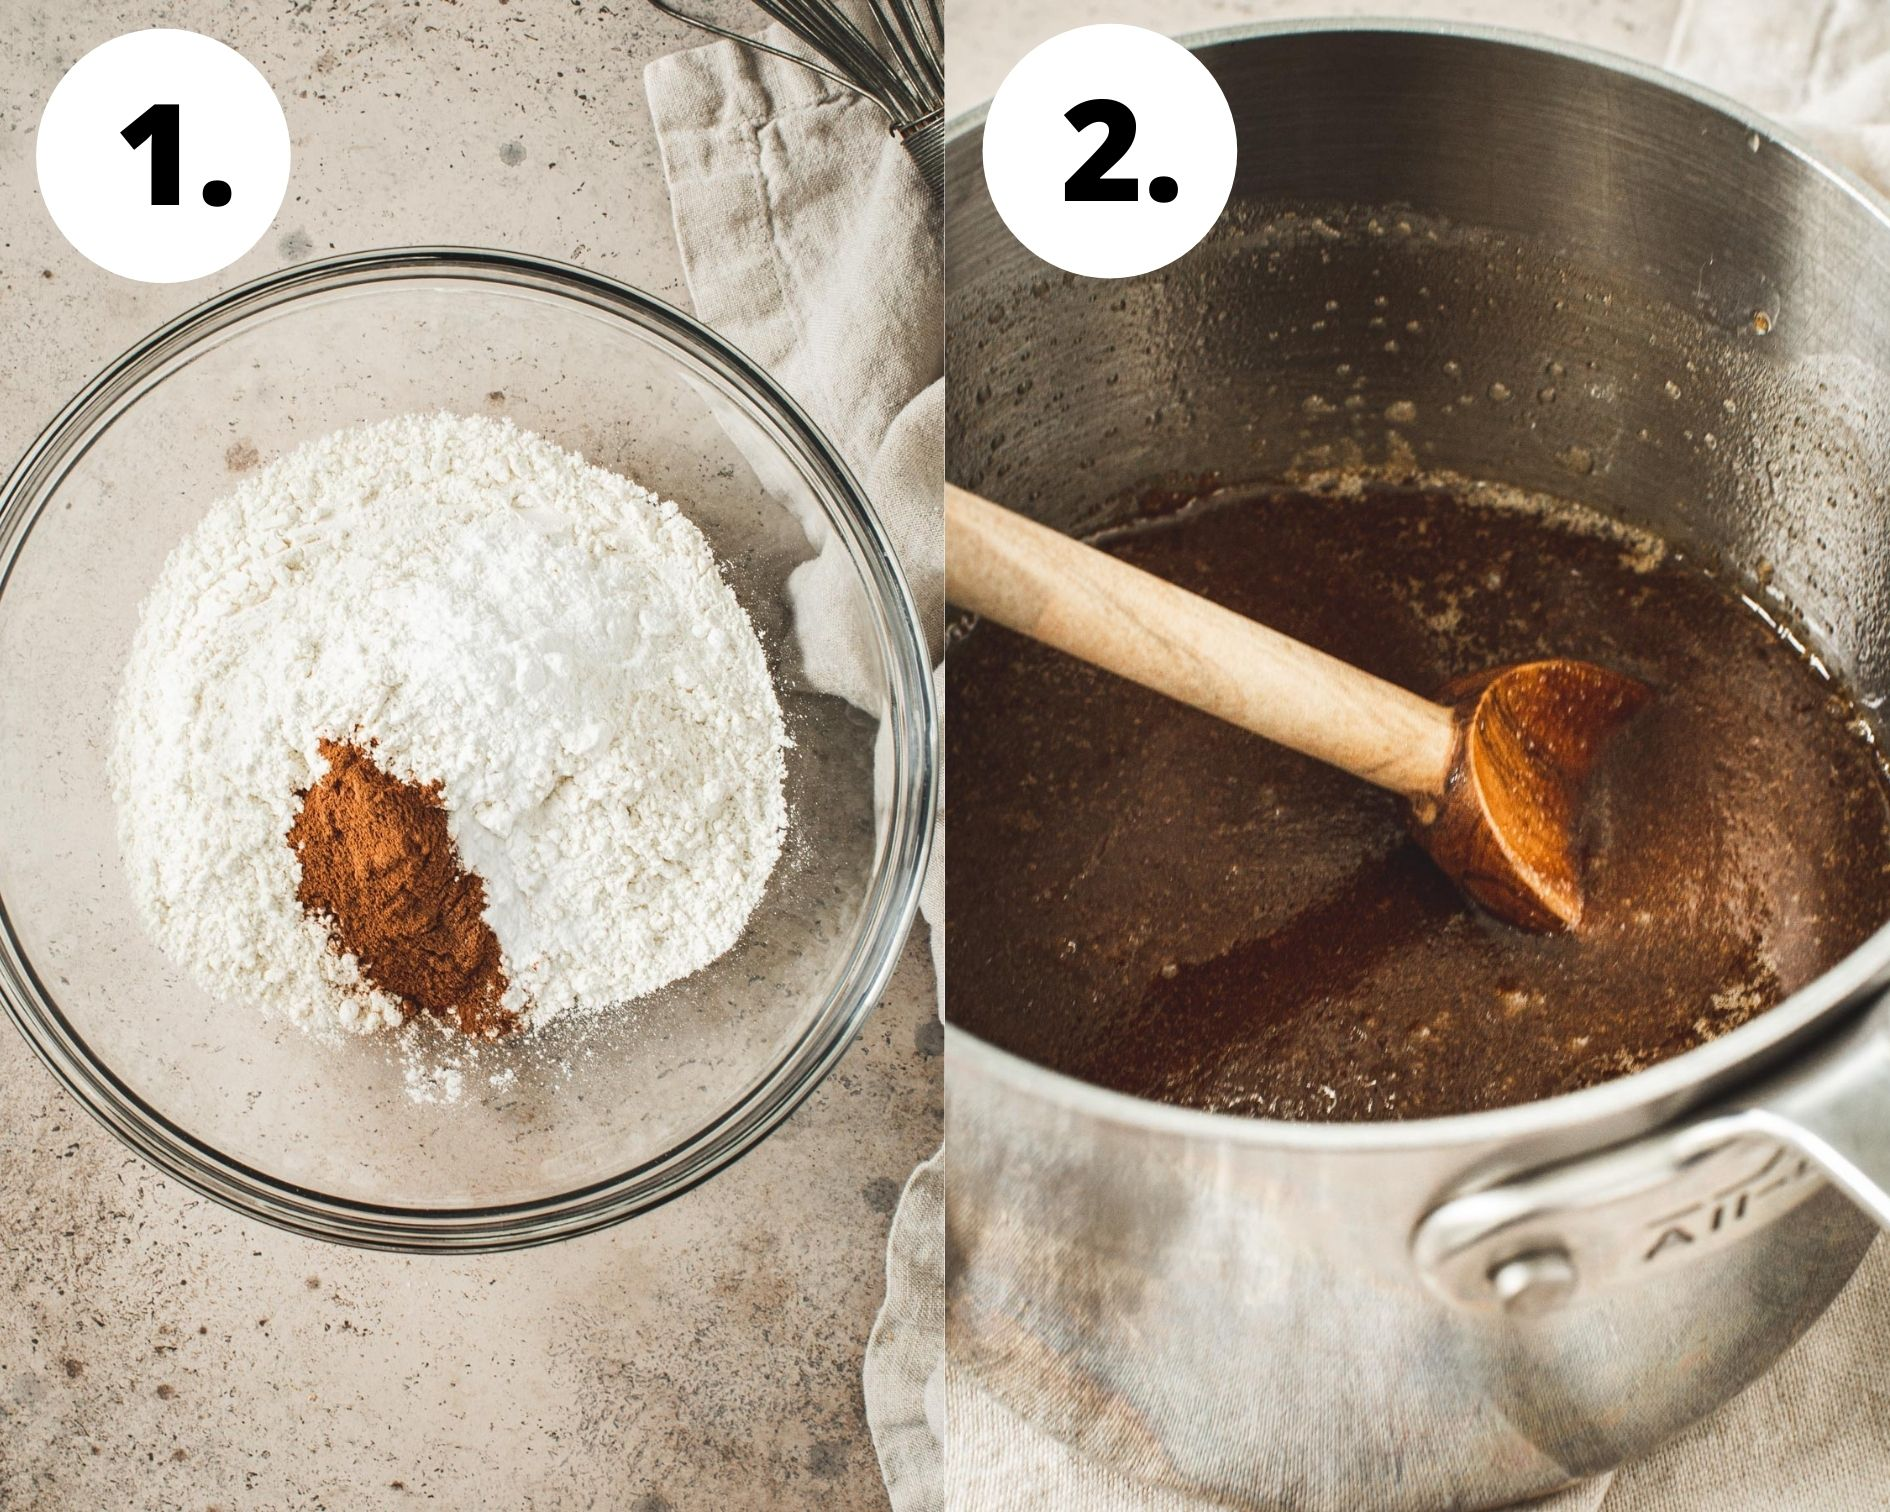 Cinnamon squares process steps 1 and 2.